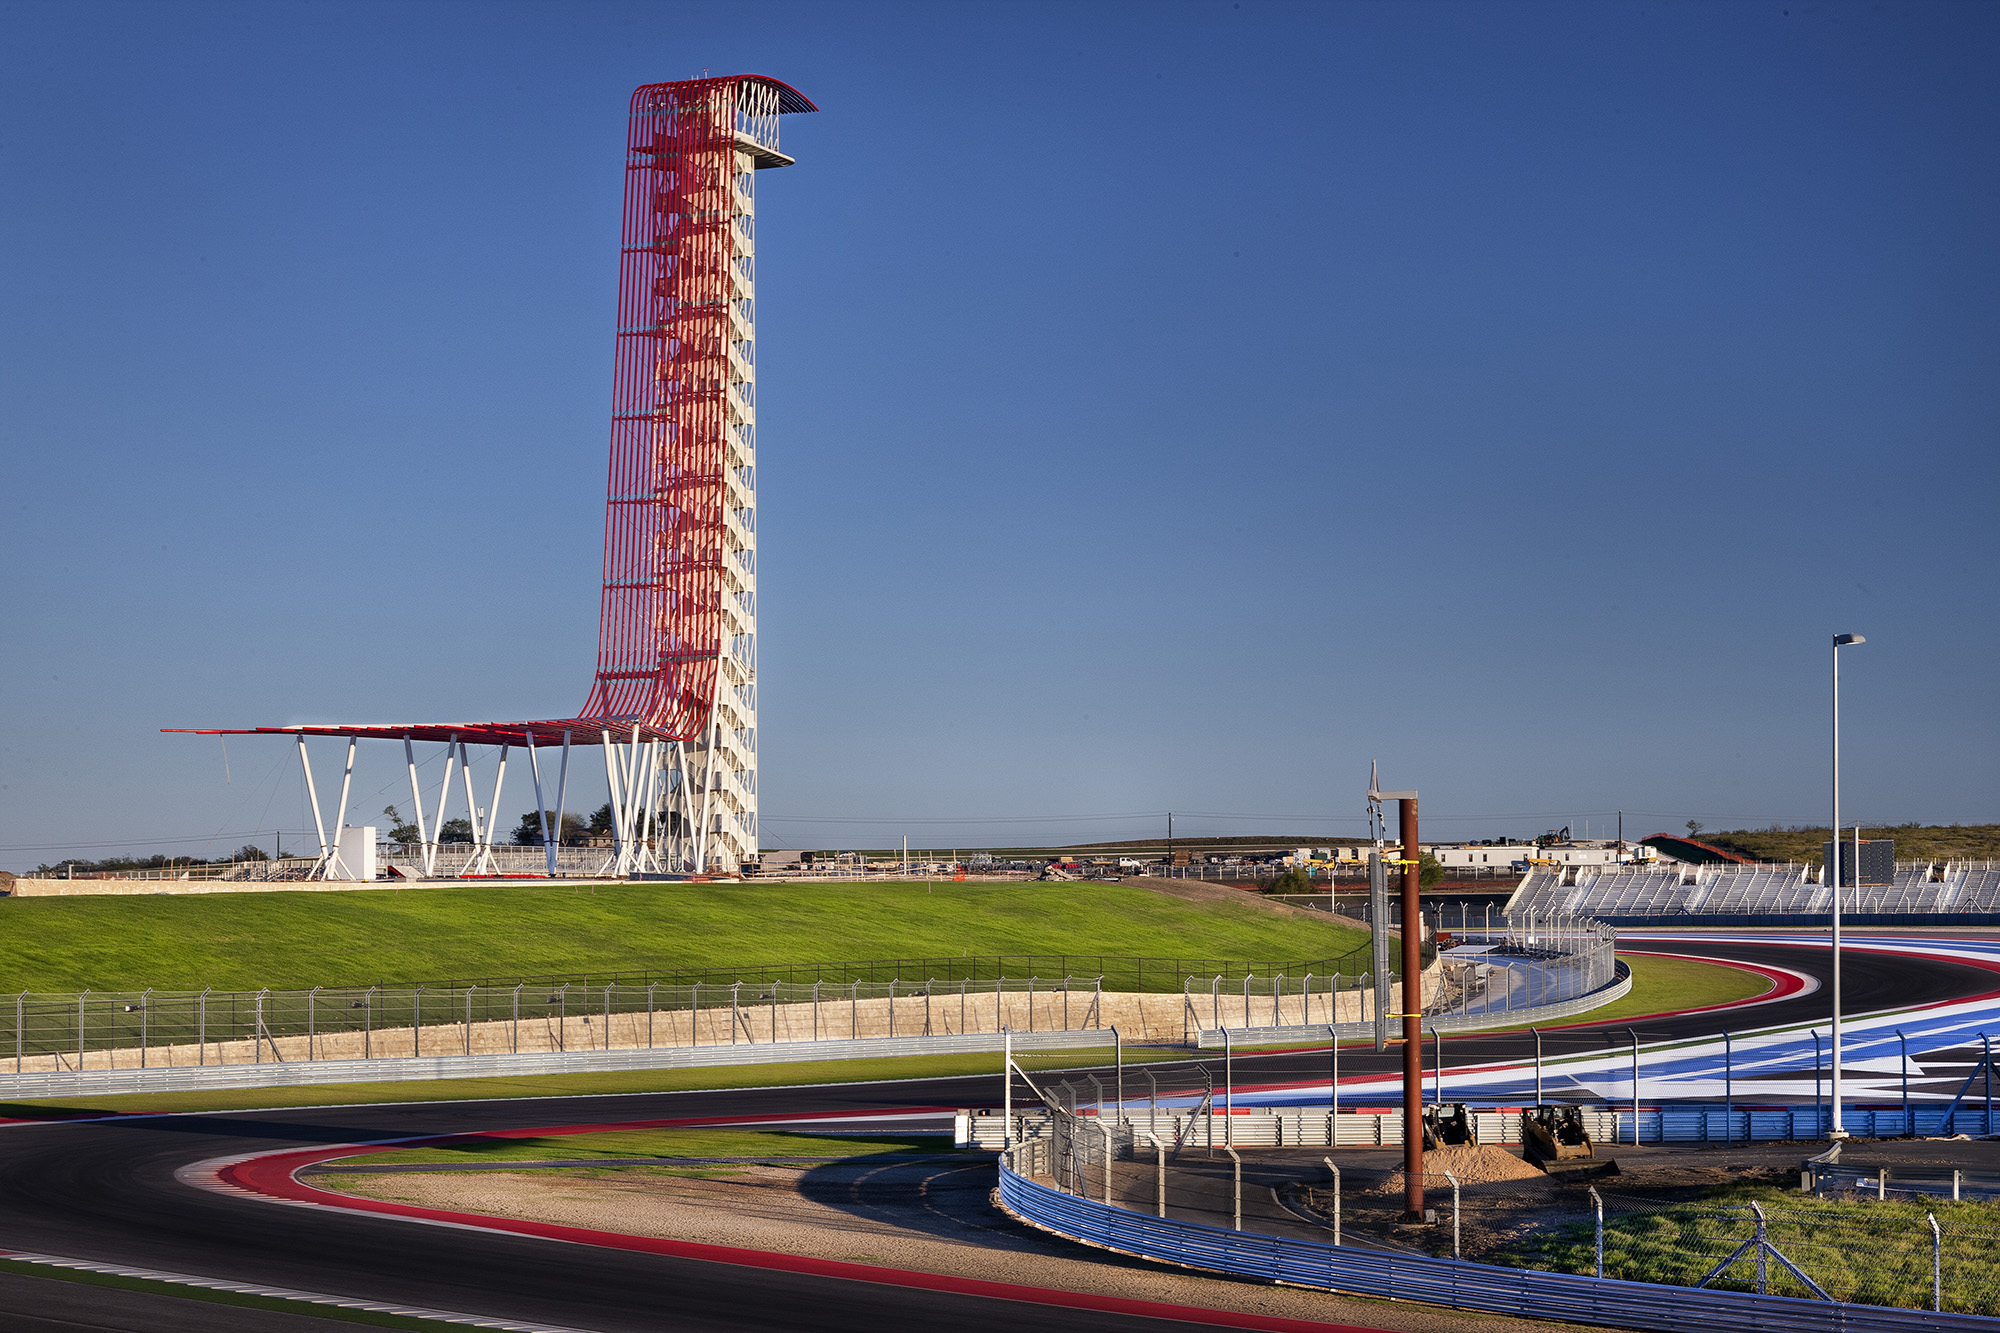 """Named the """"Most Instagrammed"""" location in Texas, the Observation Tower at Circuit of The Americas has become an iconic local landmark."""